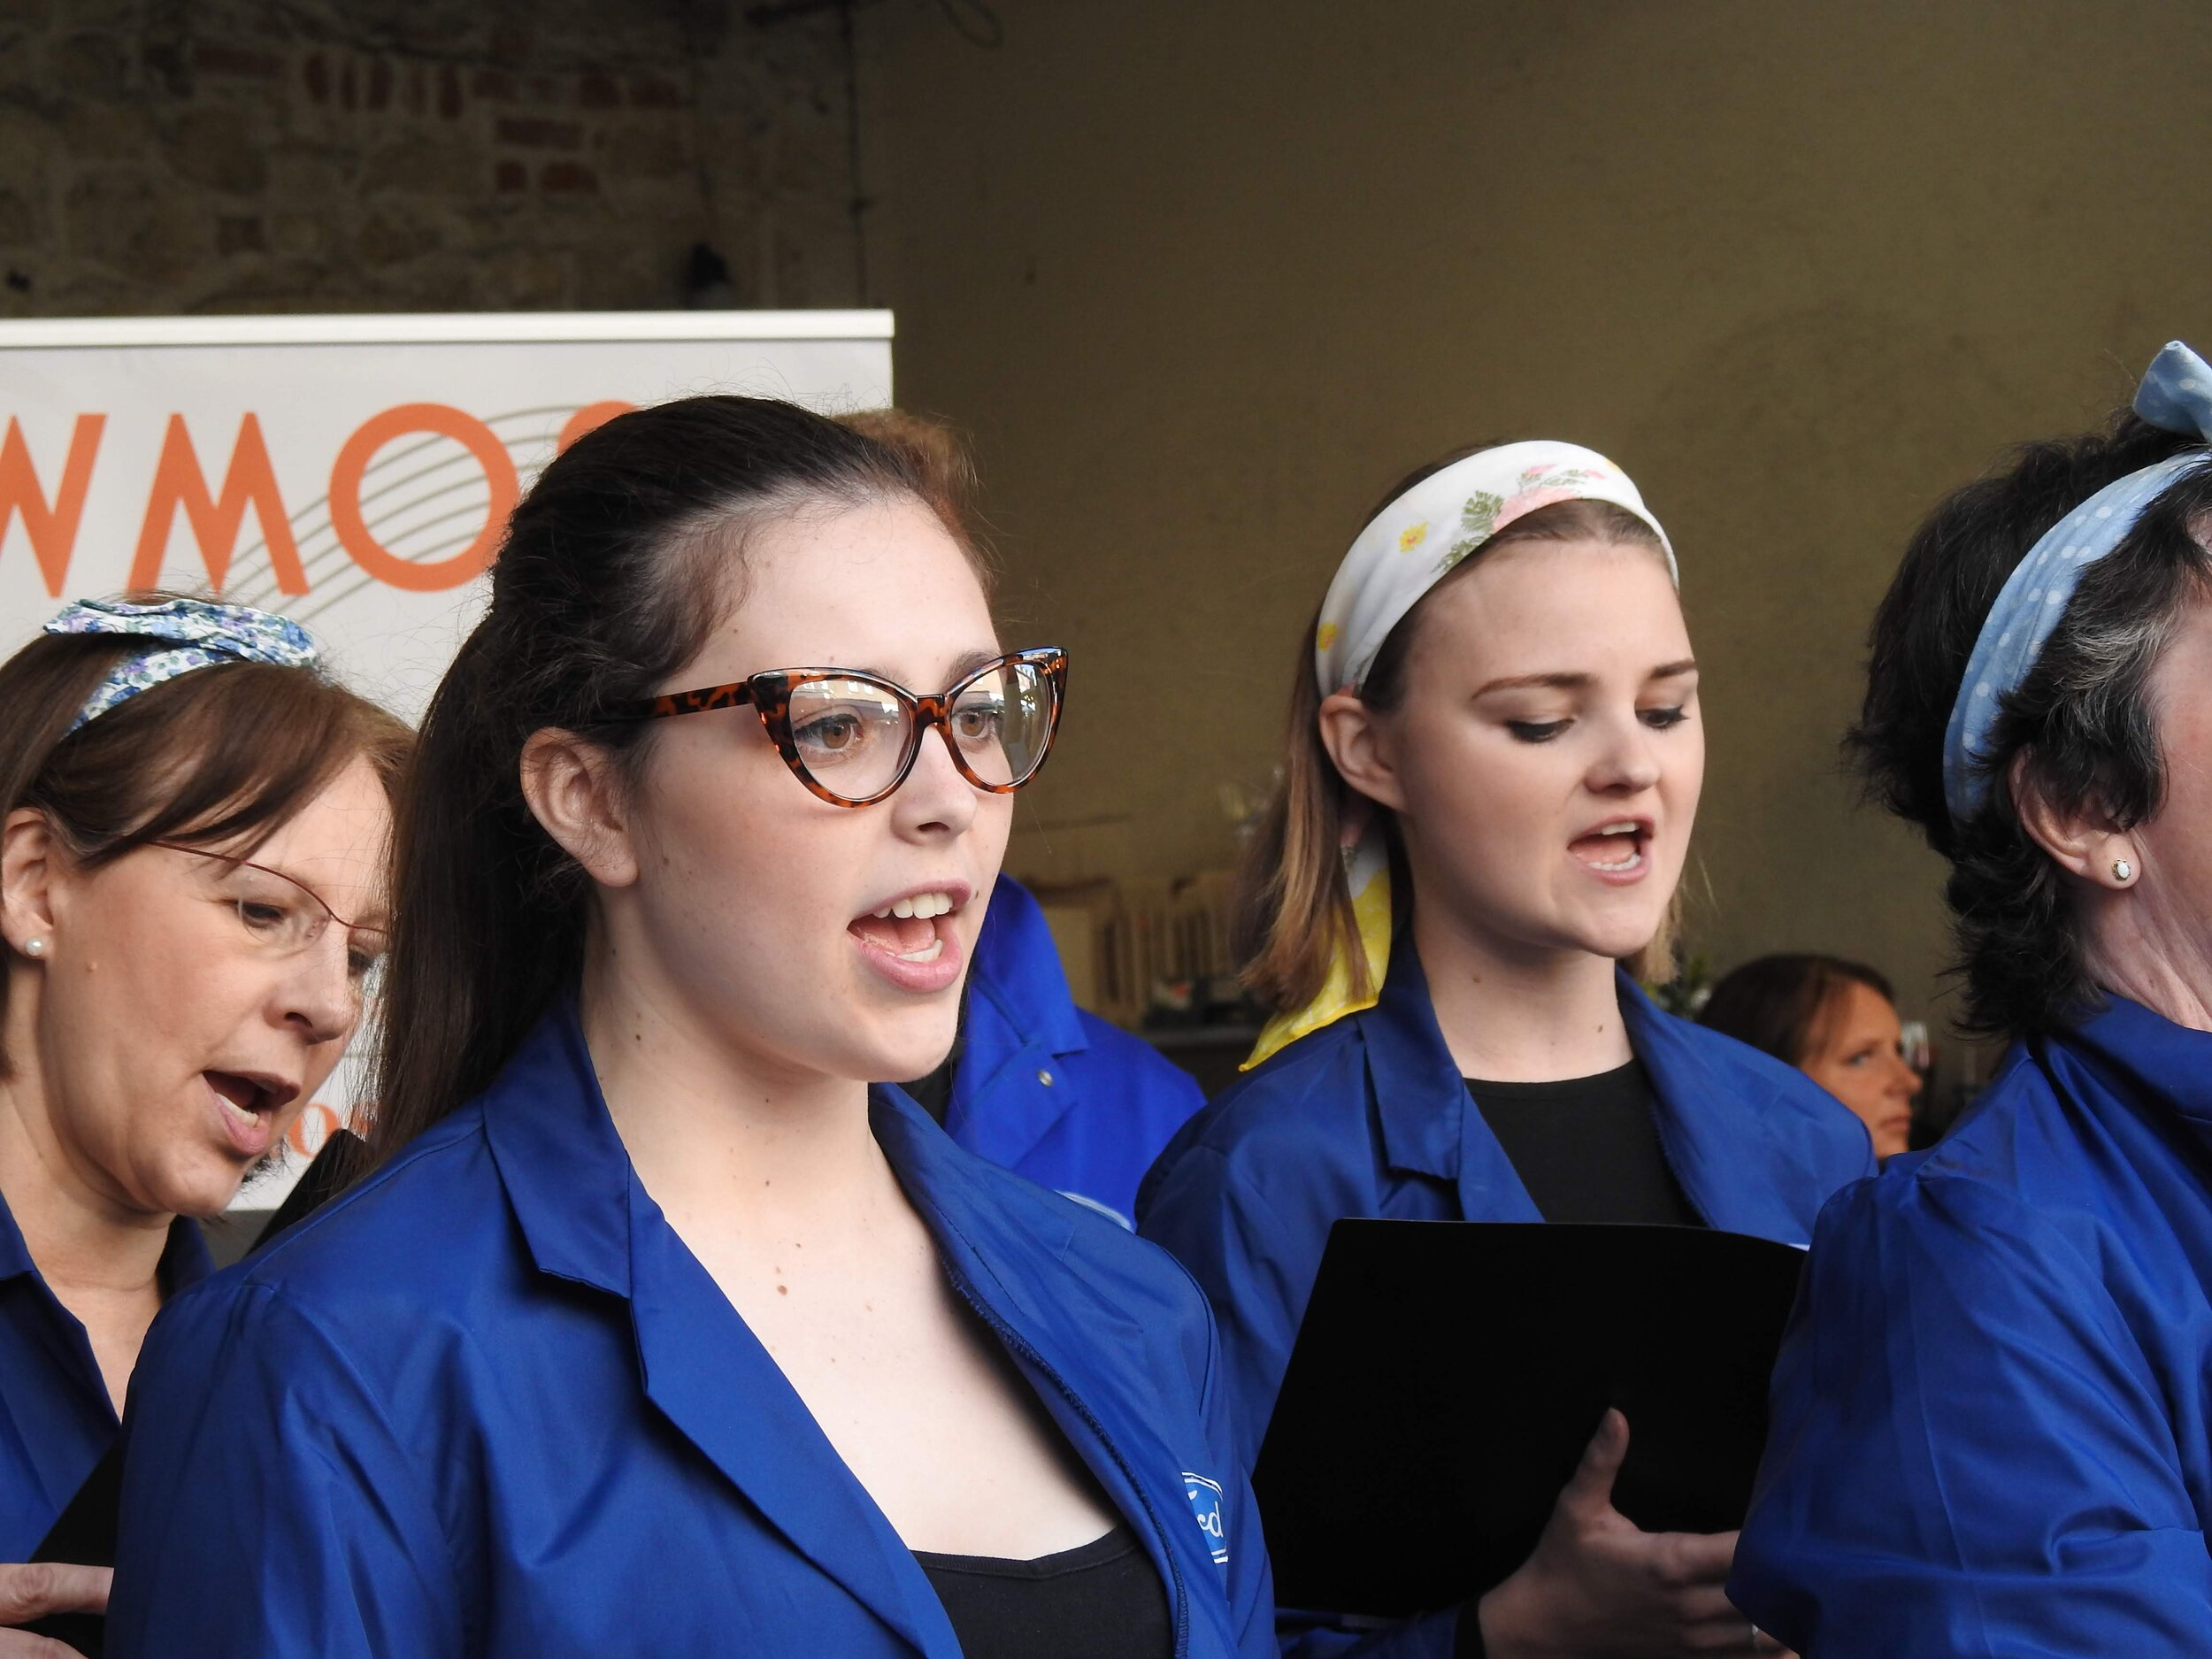 Singing on the High Street!